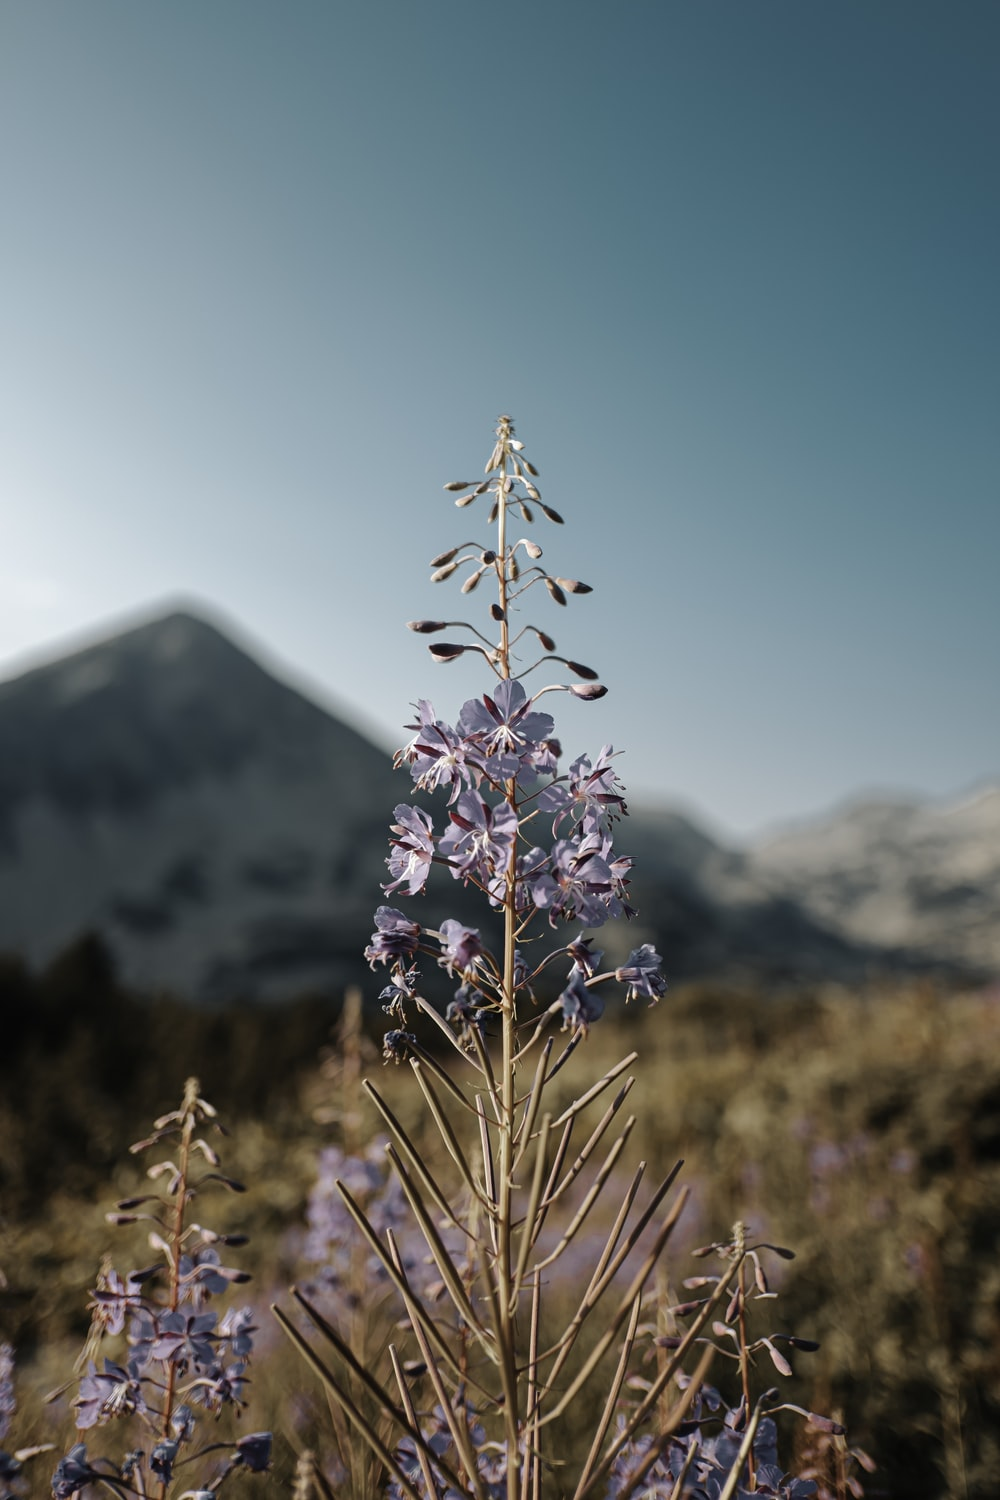 purple flower in front of snow covered mountain during daytime